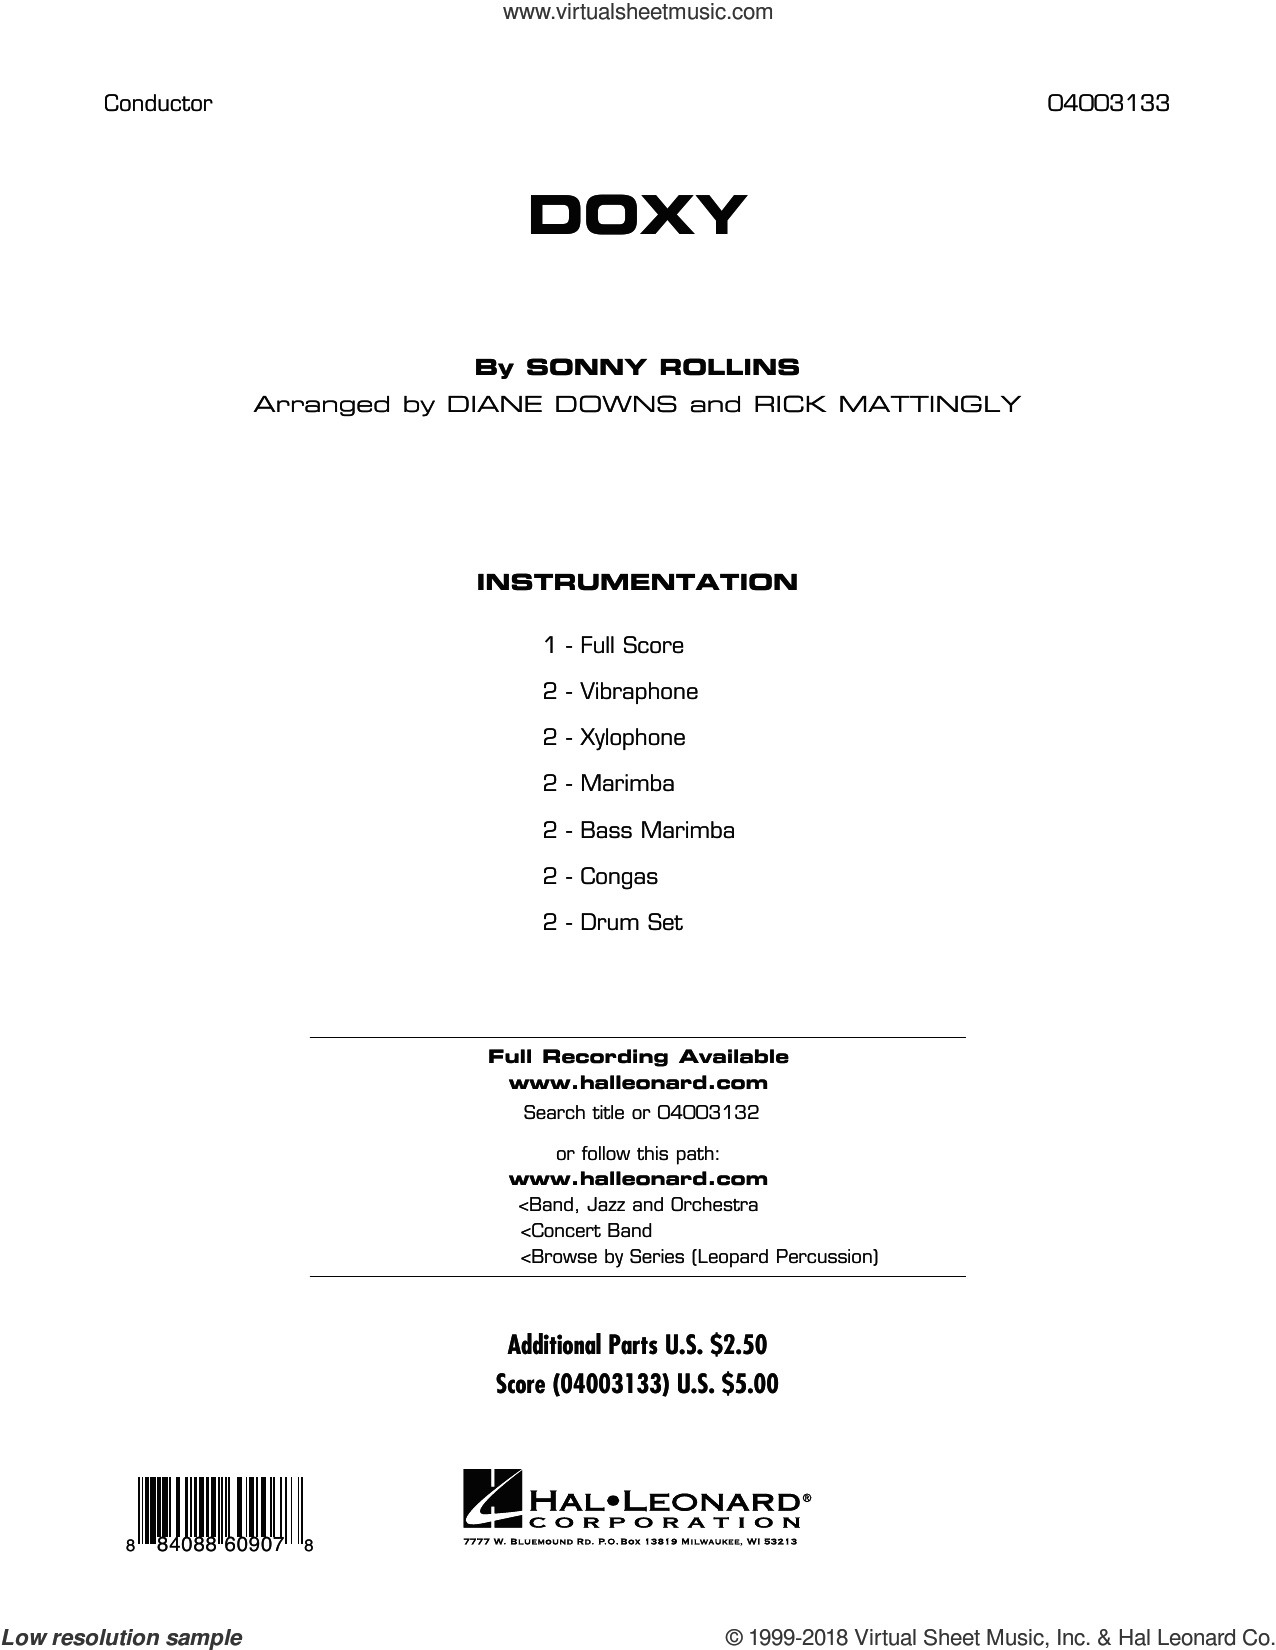 Doxy (COMPLETE) sheet music for concert band by Sonny Rollins, Diane Downs and Rick Mattingly, intermediate skill level